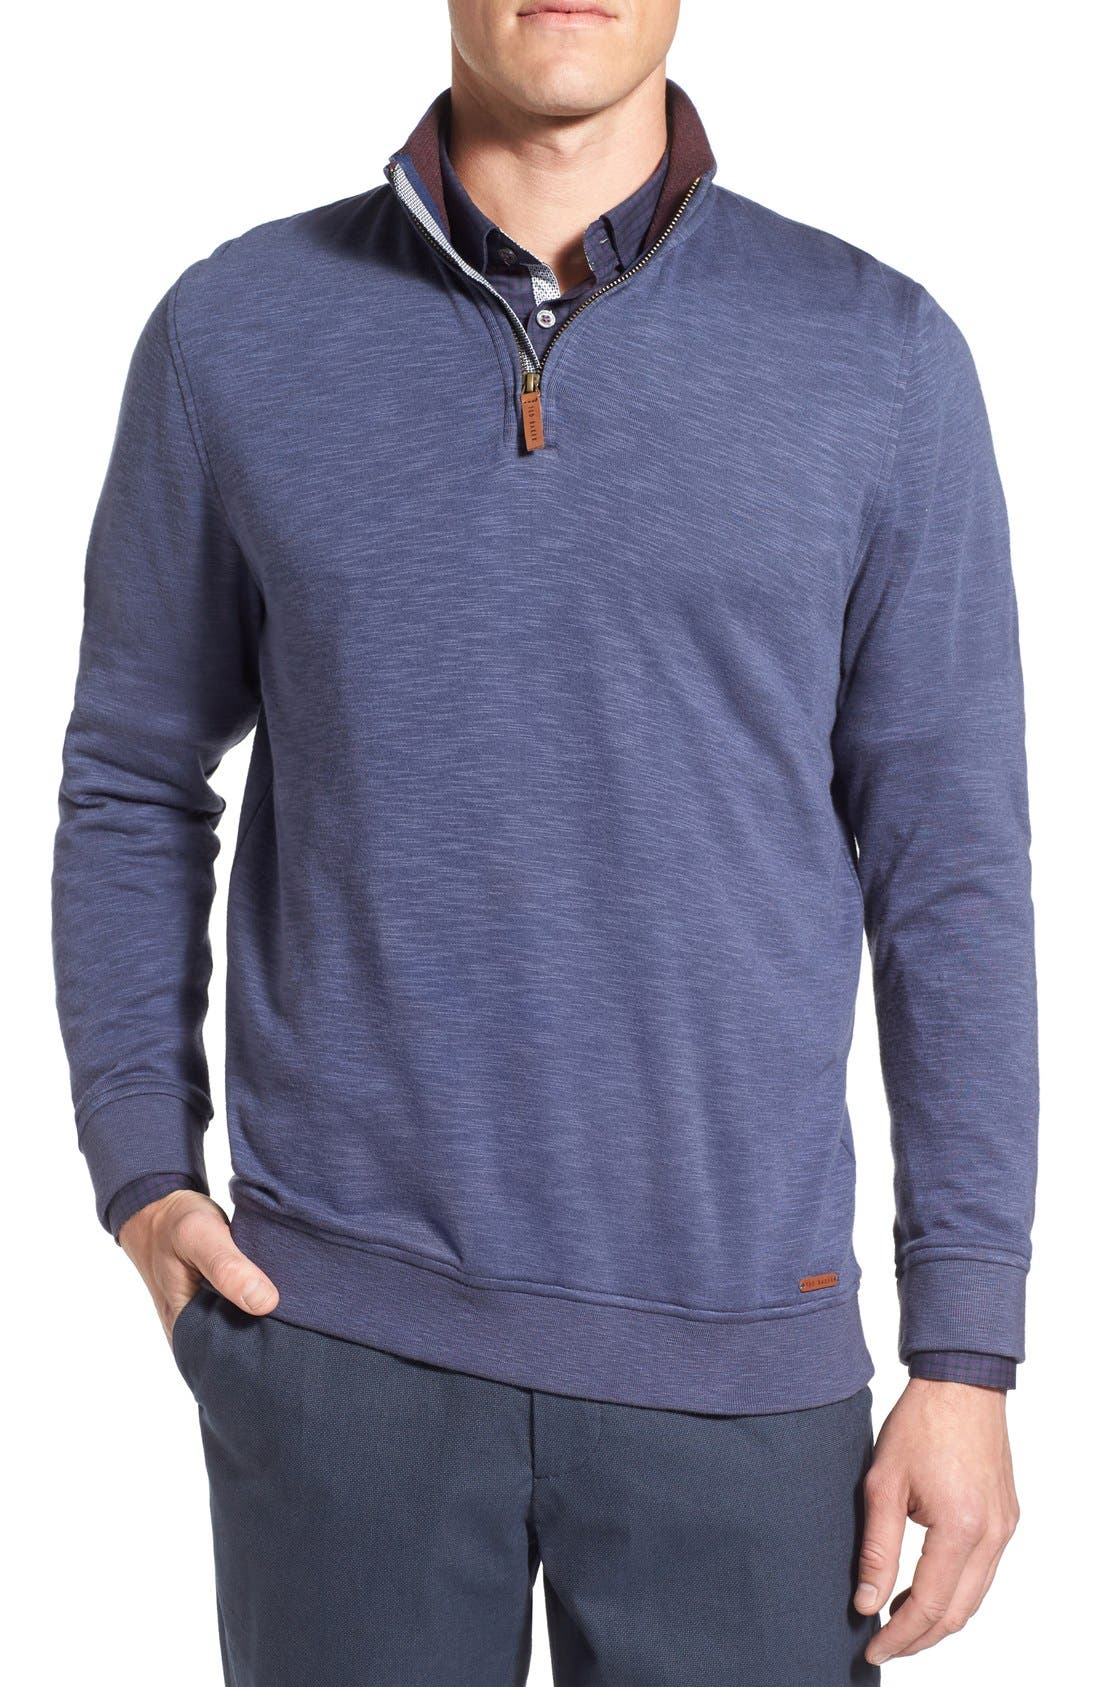 Main Image - Ted Baker London 'Mandra' Quarter Zip Pullover